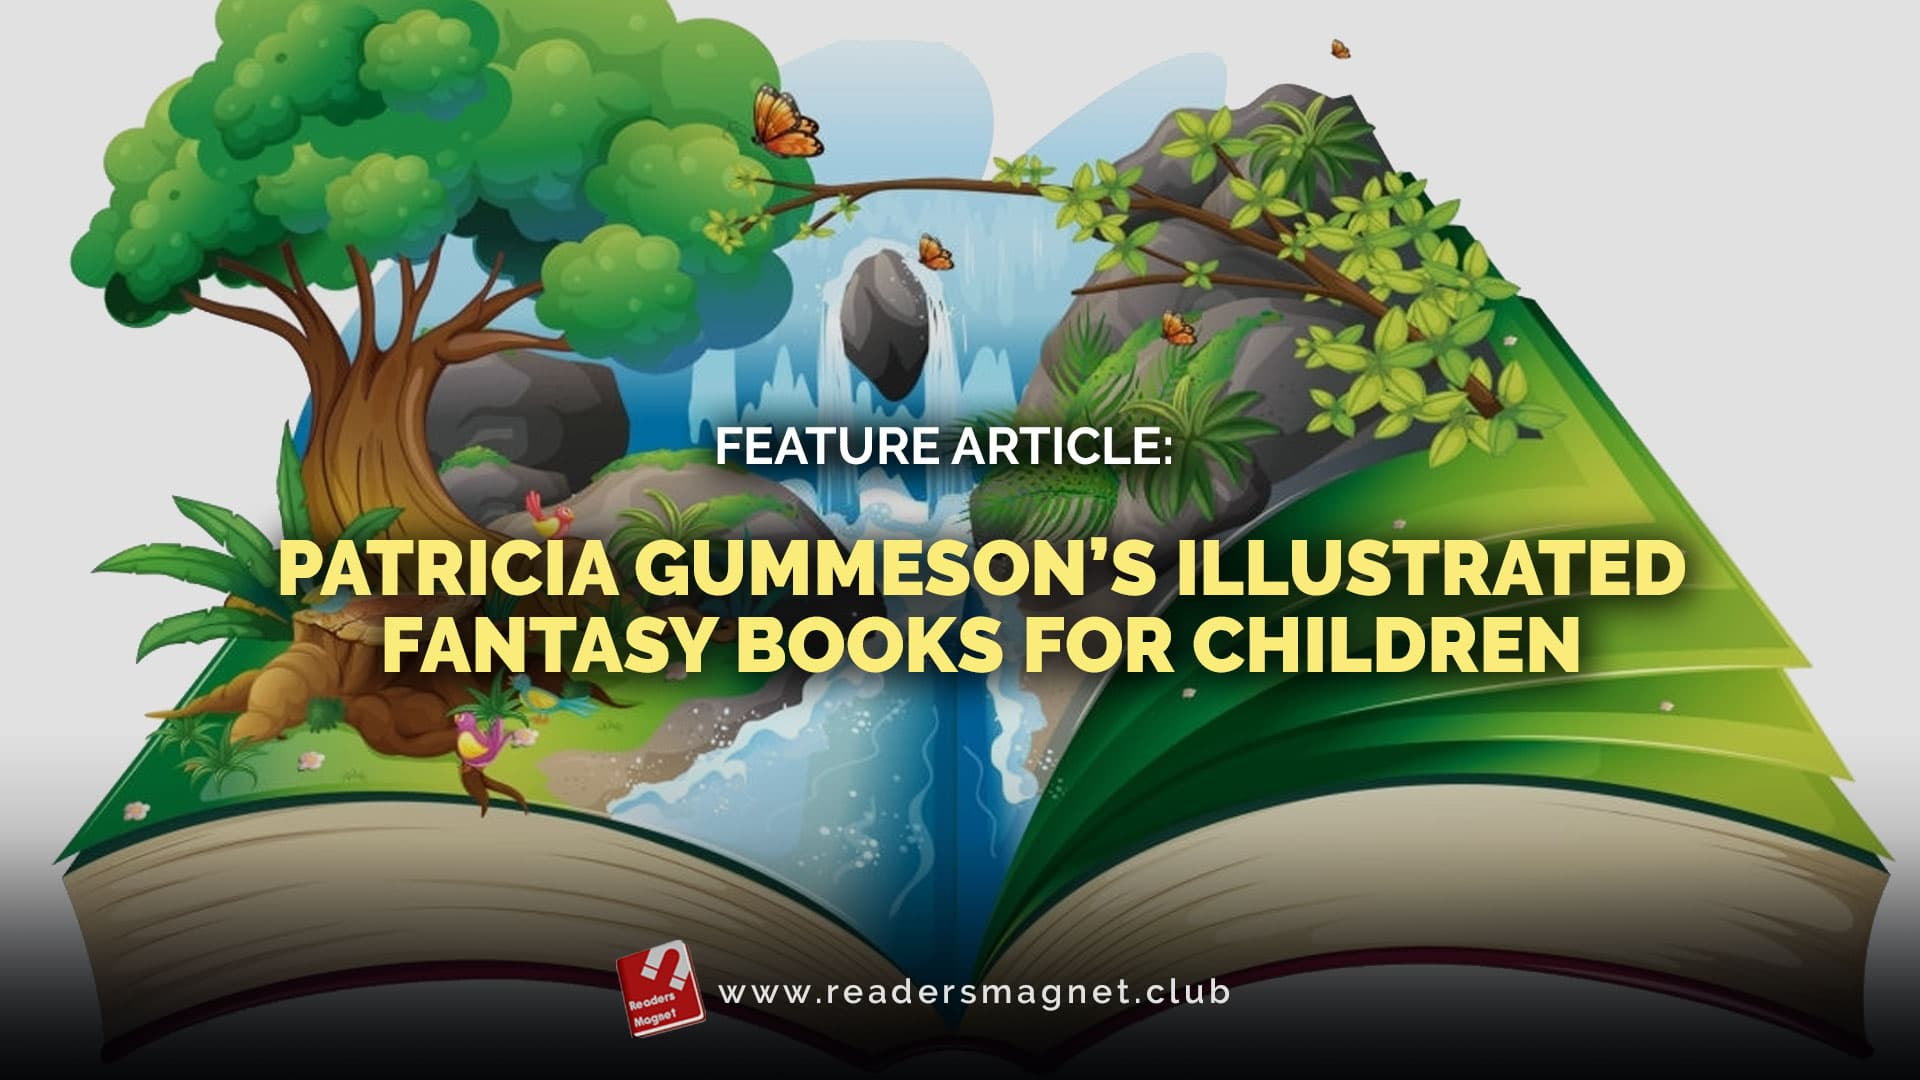 Feature-Article-Patricia-Gummesons-Illustrated-Fantasy-Books-for-Children banner